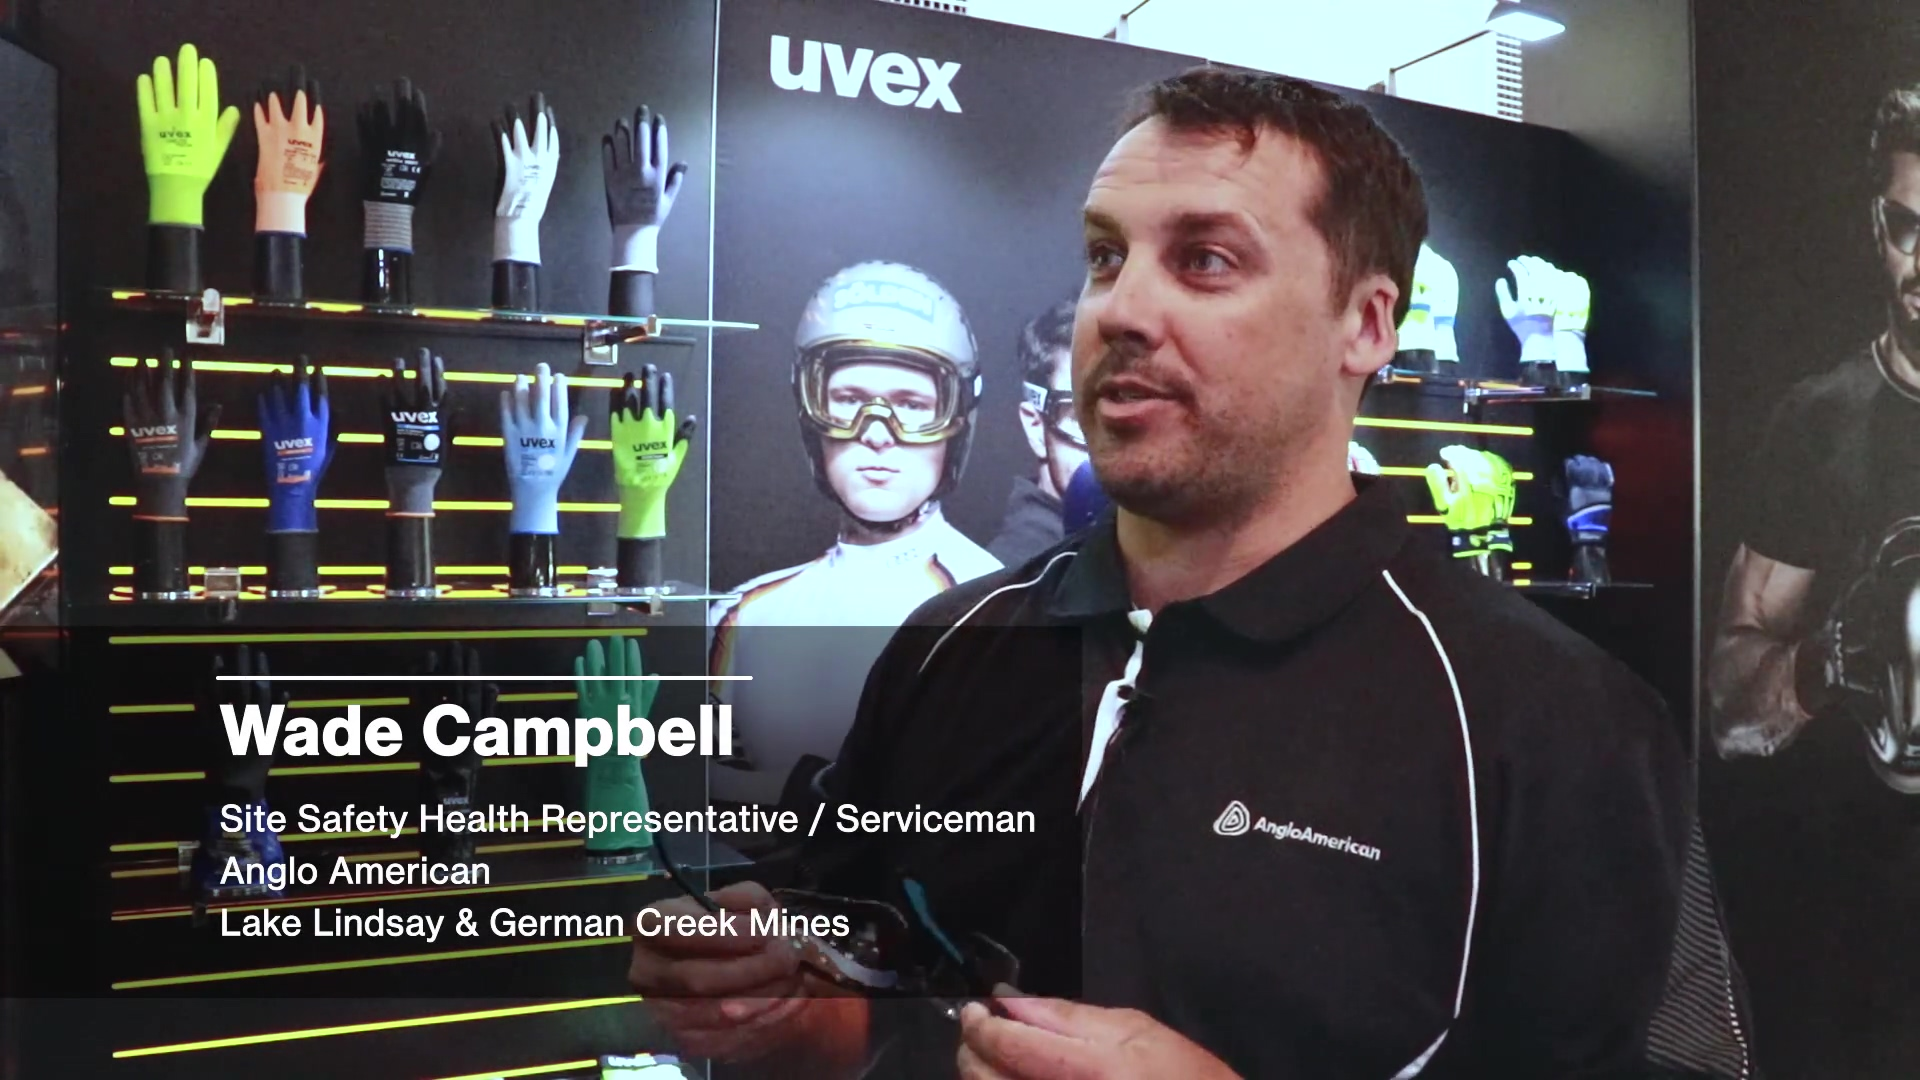 uvex Testimonial - Wade Campbell_F